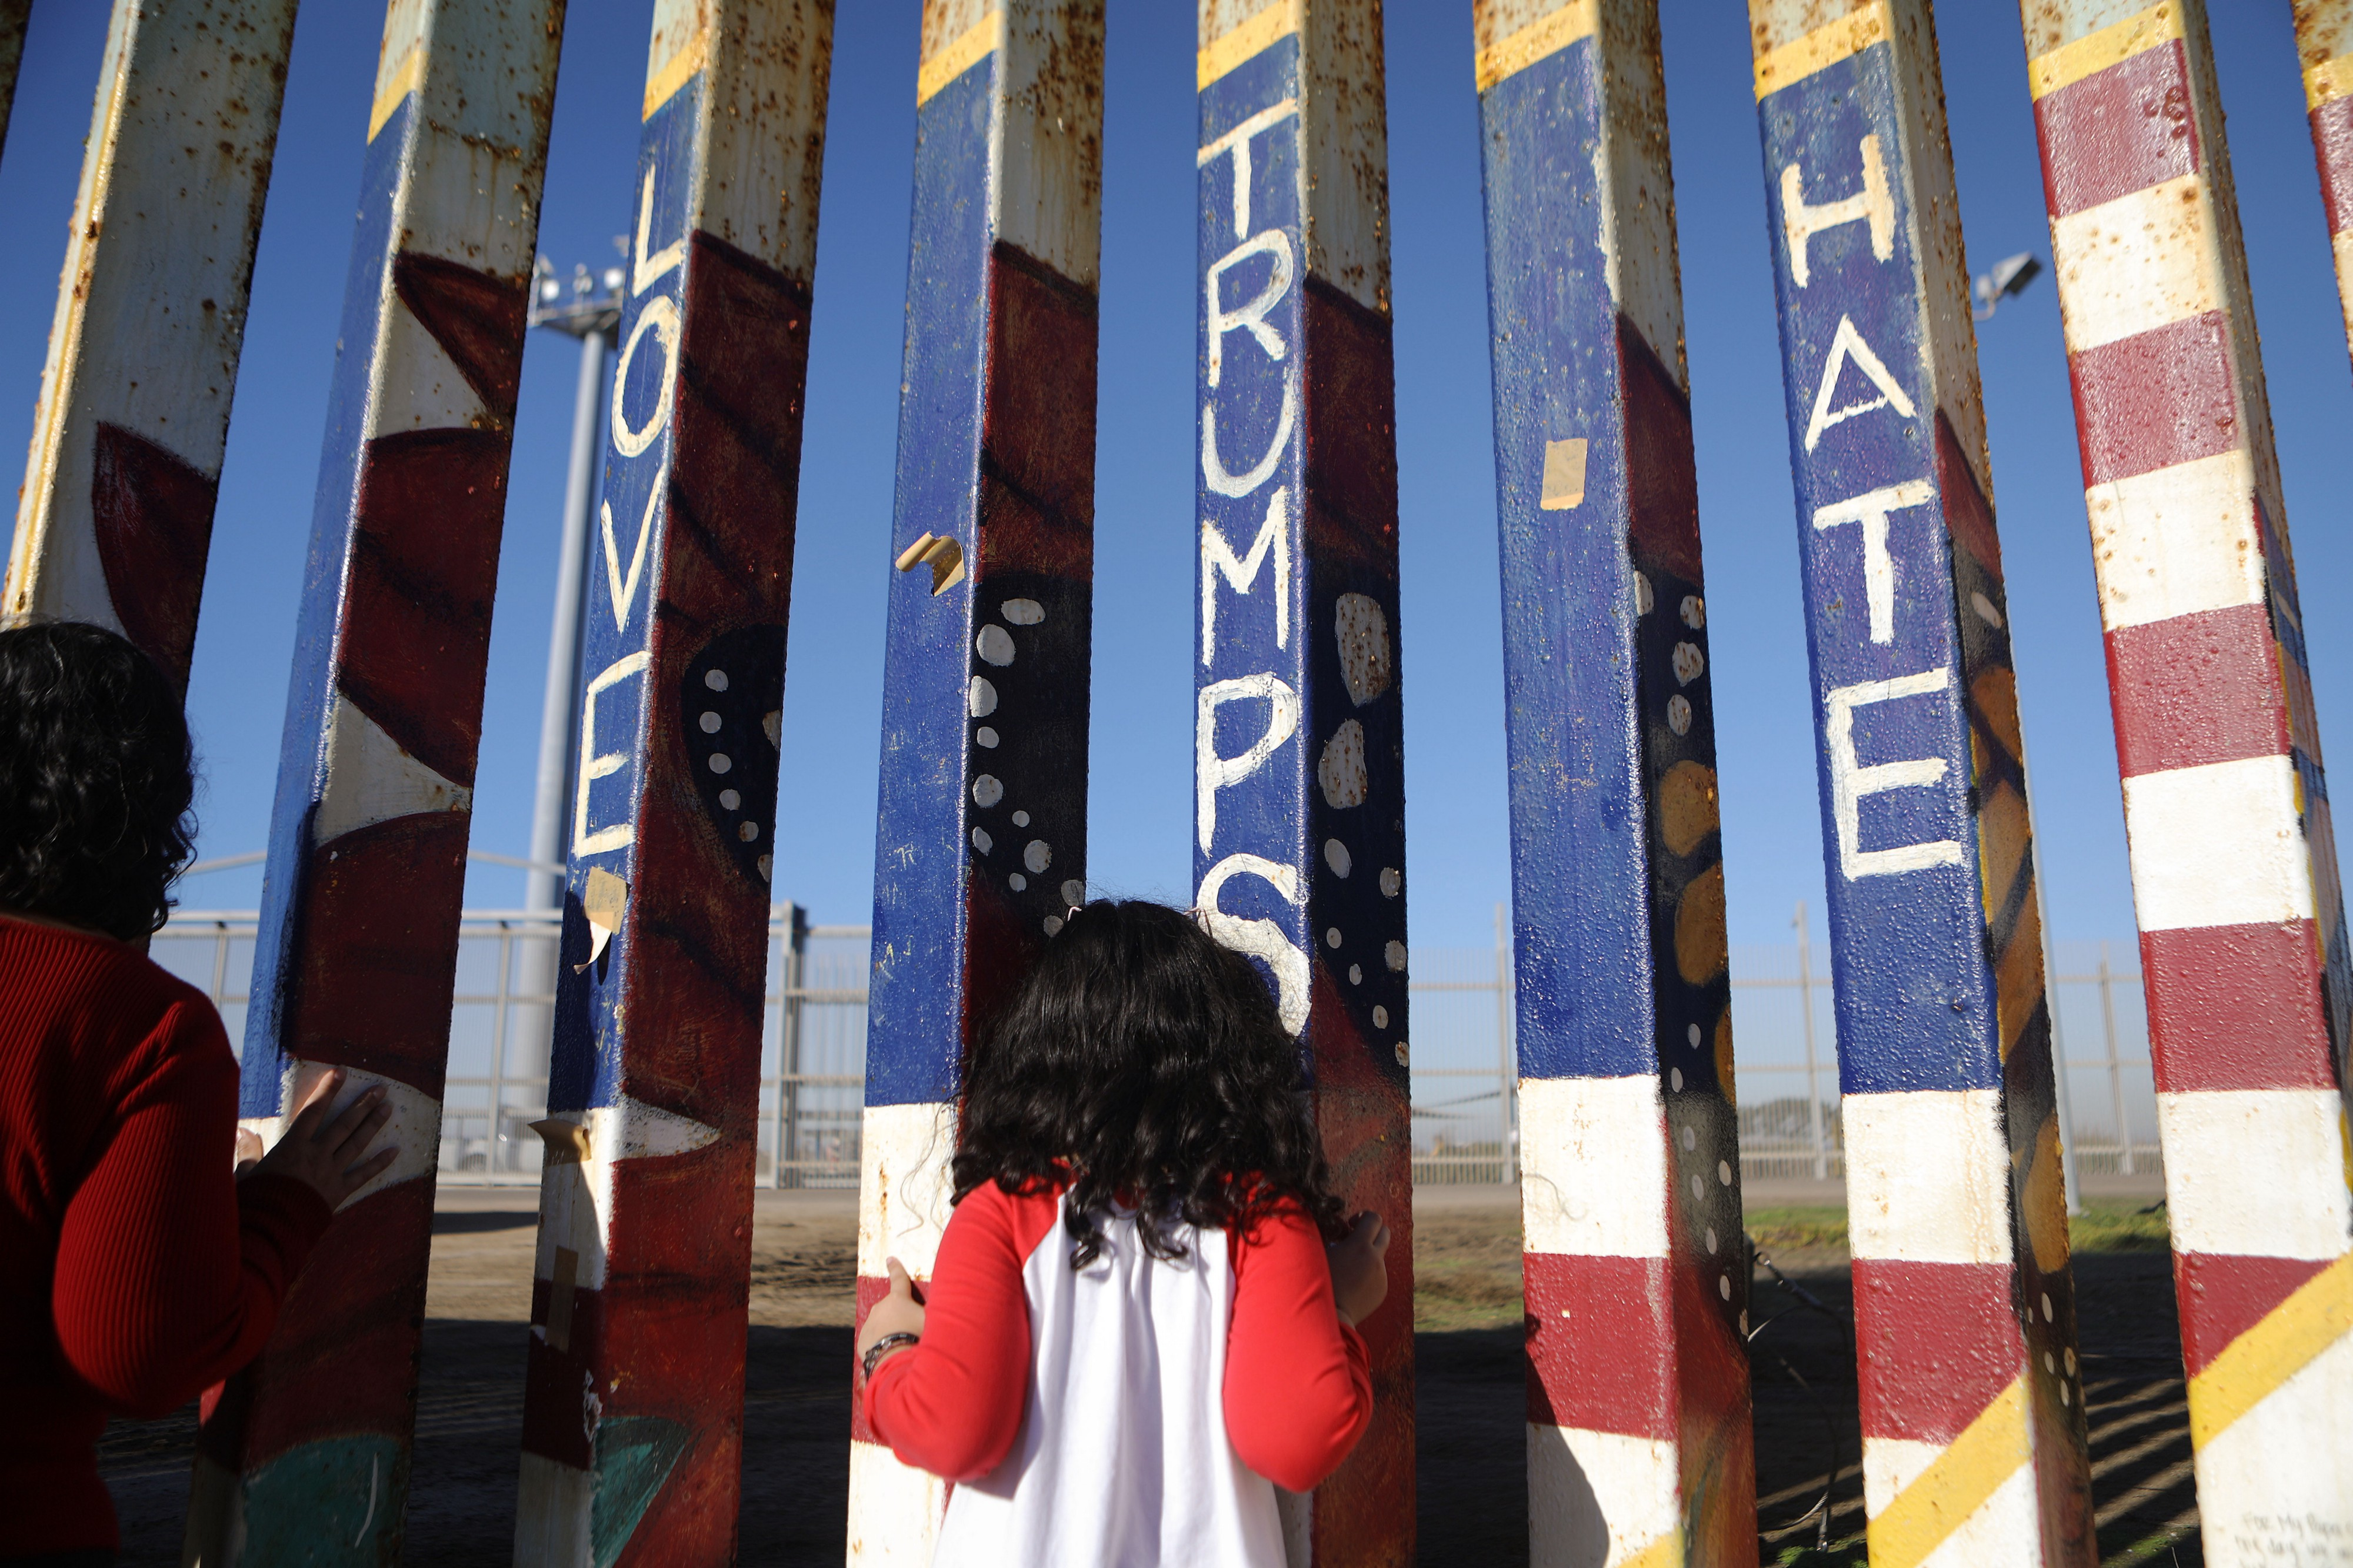 A girl stands beneath a painted message 'Love Trumps Hate' while looking towards the U.S. along the U.S.-Mexico border fence.